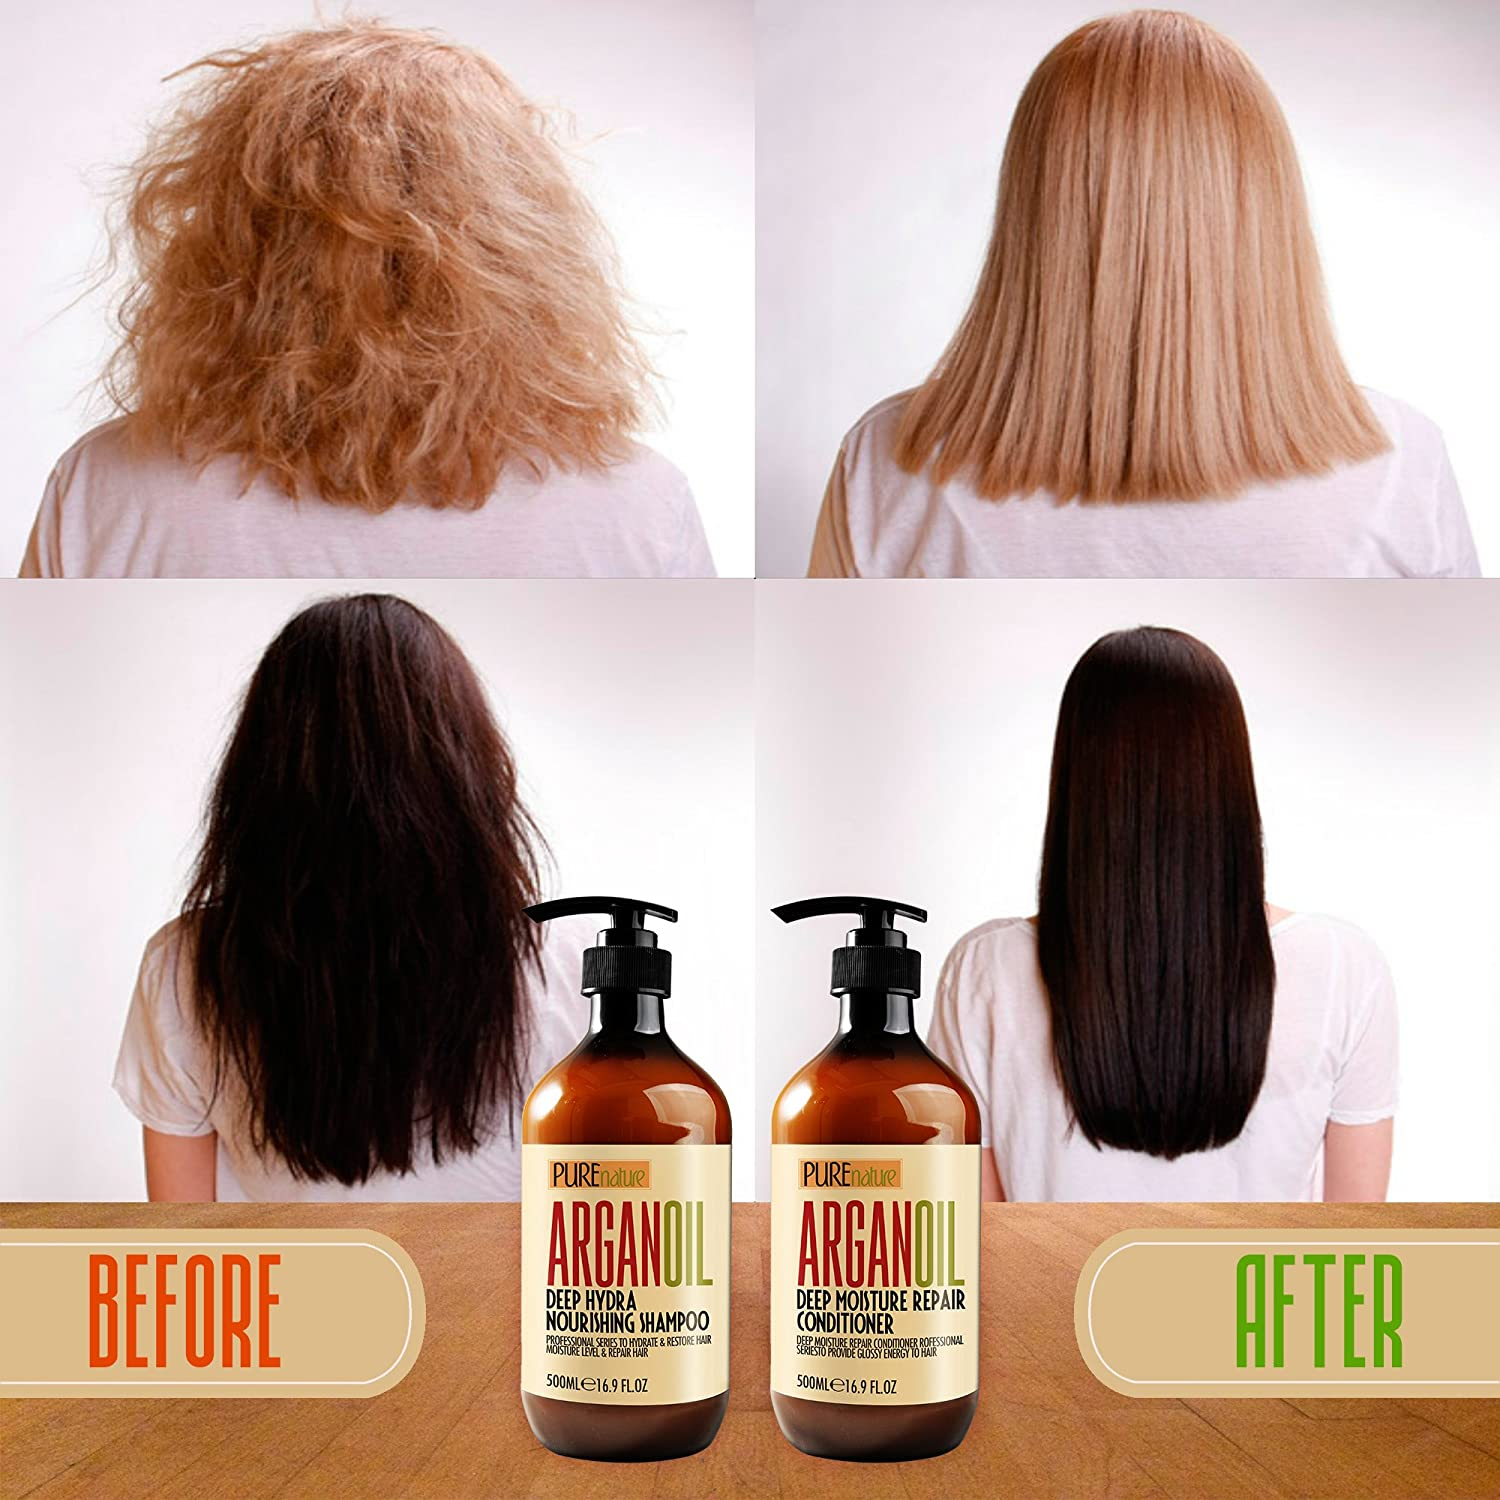 What is the best shampoo for permed hair?